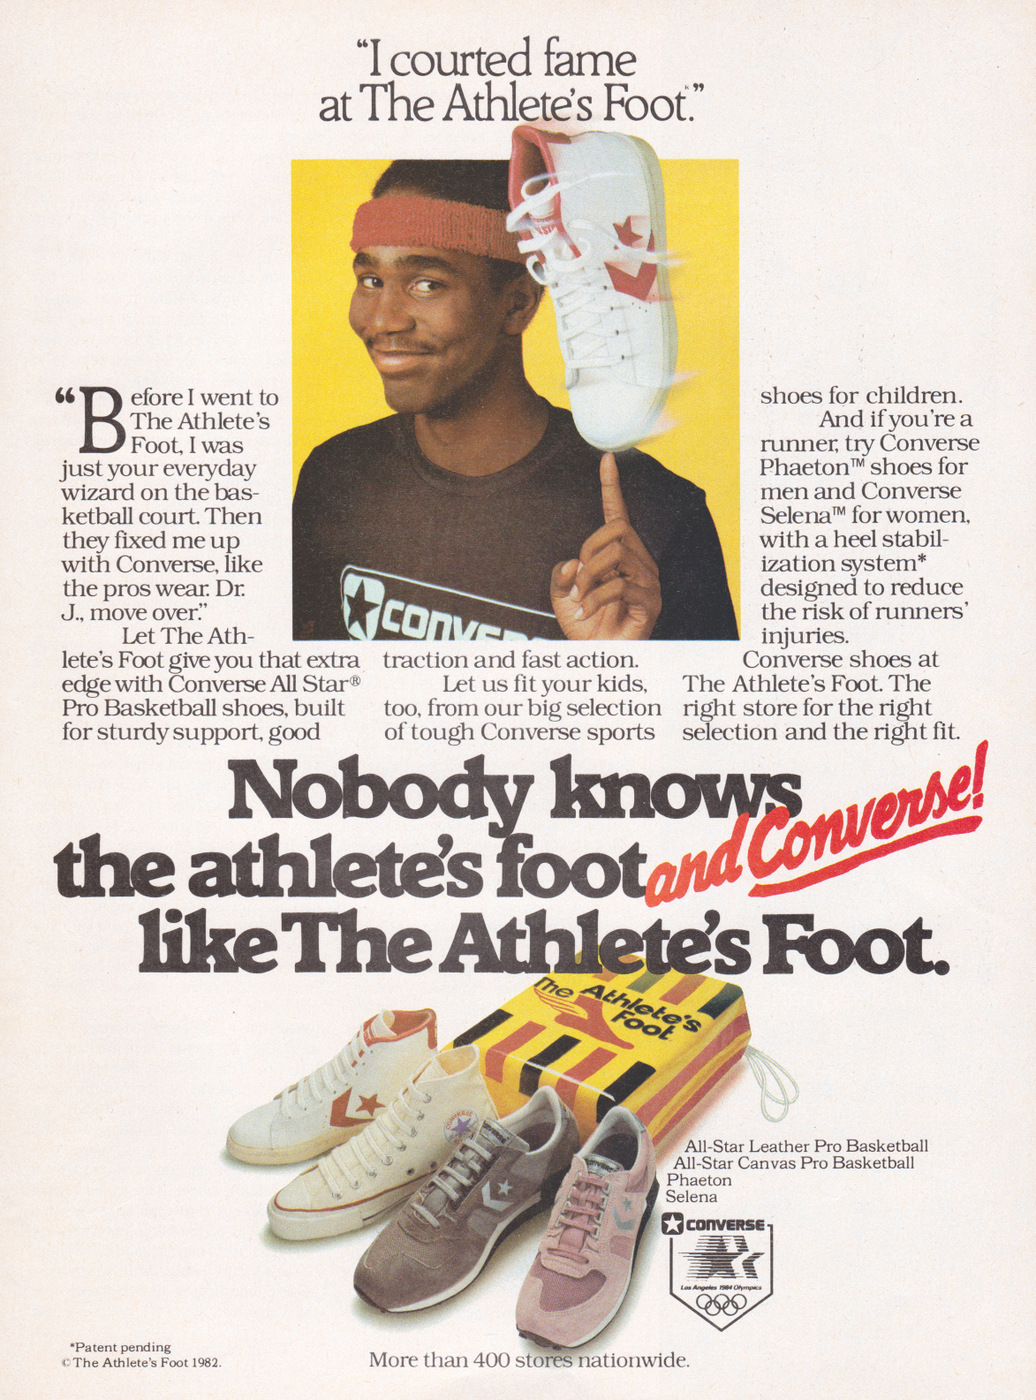 I courted fame at The Athlete's Foot